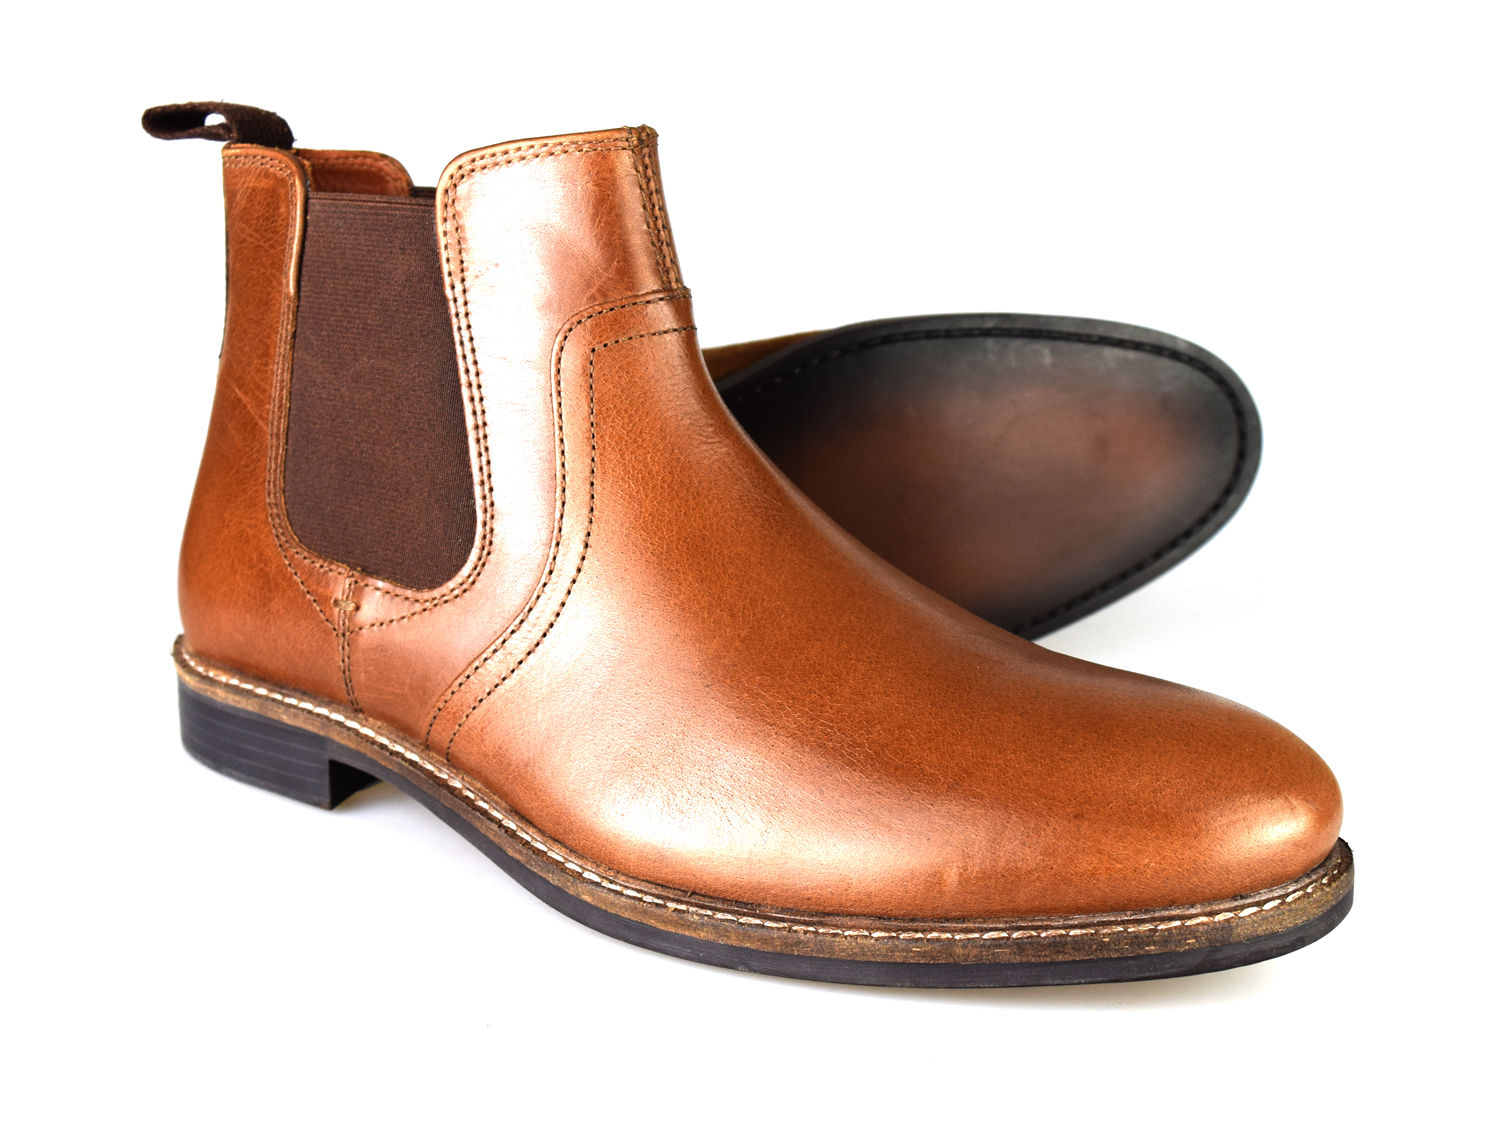 02b5cdd0114 This is a fantastic pair of men's leather boots from Red Tape. They look  fantastic in this modern chunky yet formal style. They are a very  comfortable pair ...